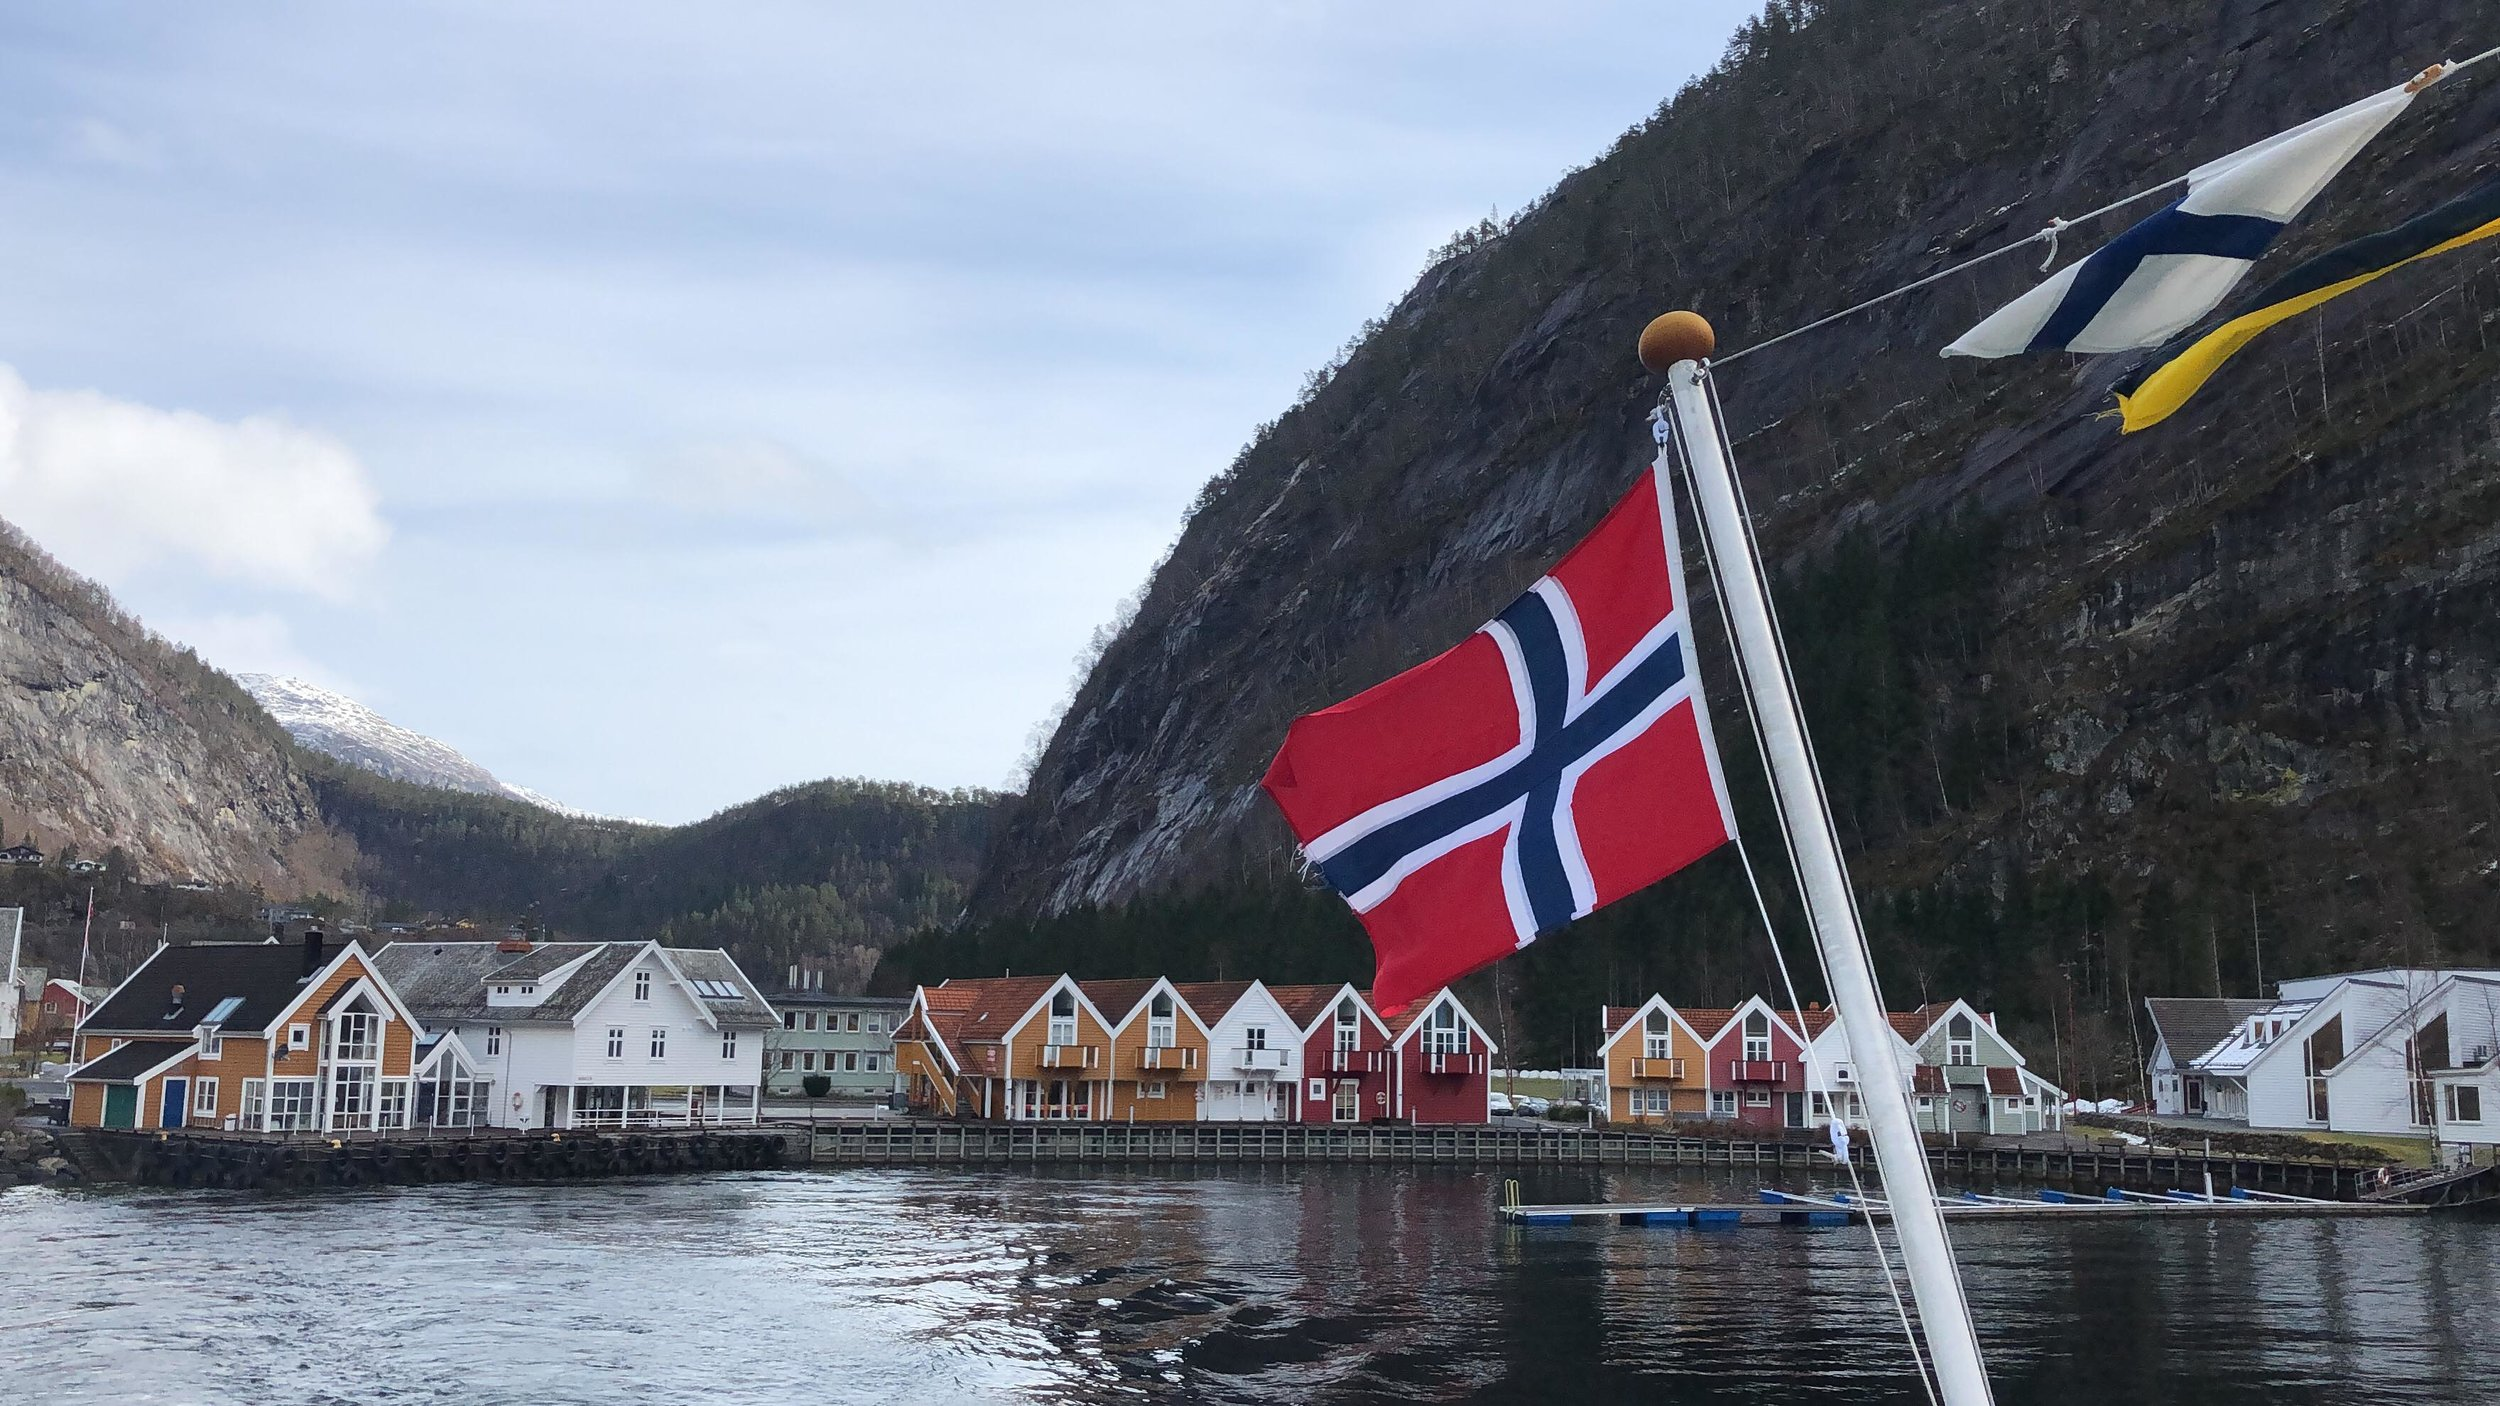 Beautiful village in the Mostraumen straight, accessible via a fjord tour from Bergen